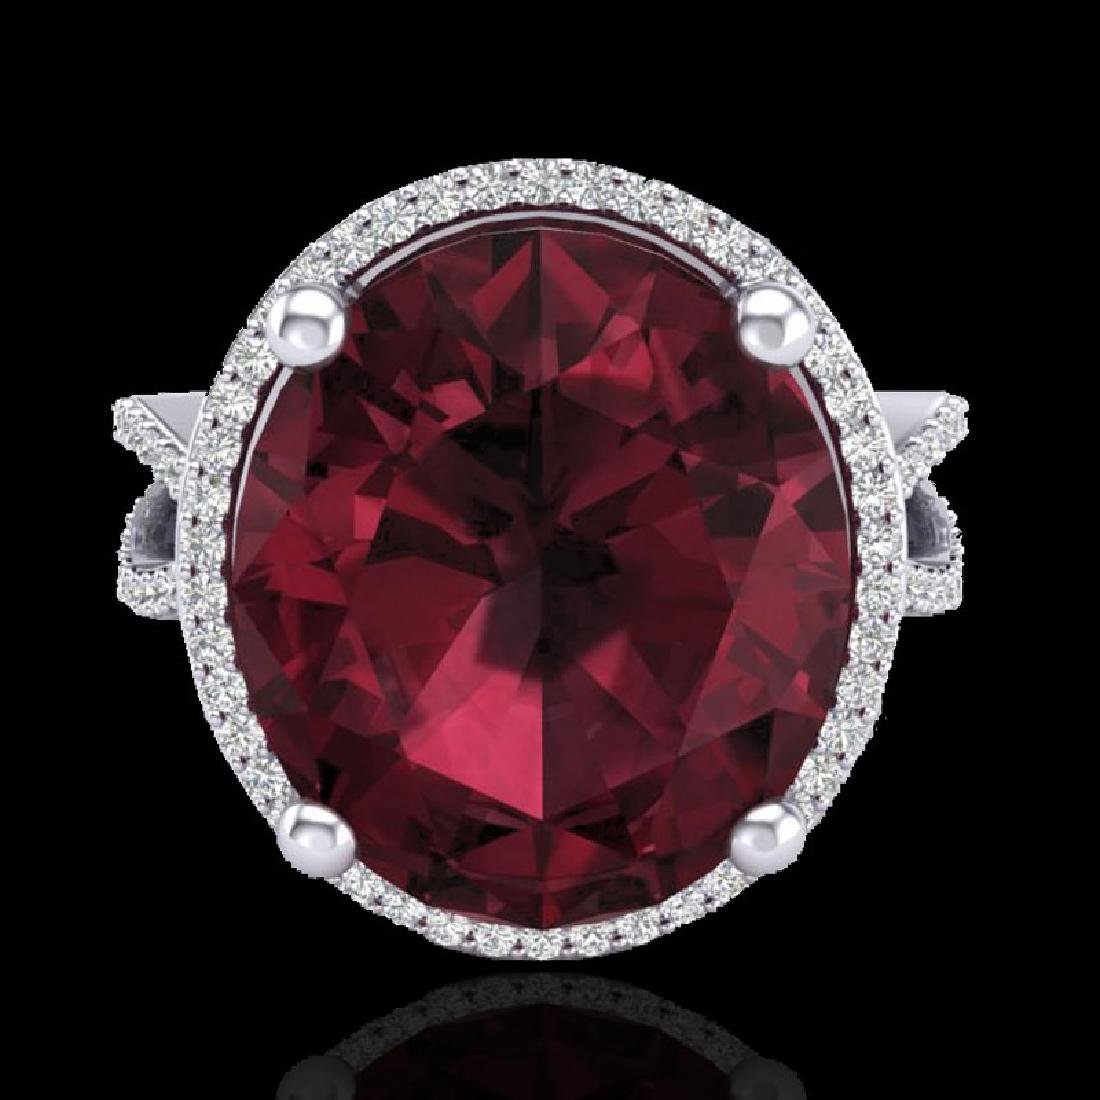 10 CTW Garnet & Micro Pave VS/SI Diamond Halo Ring 18K